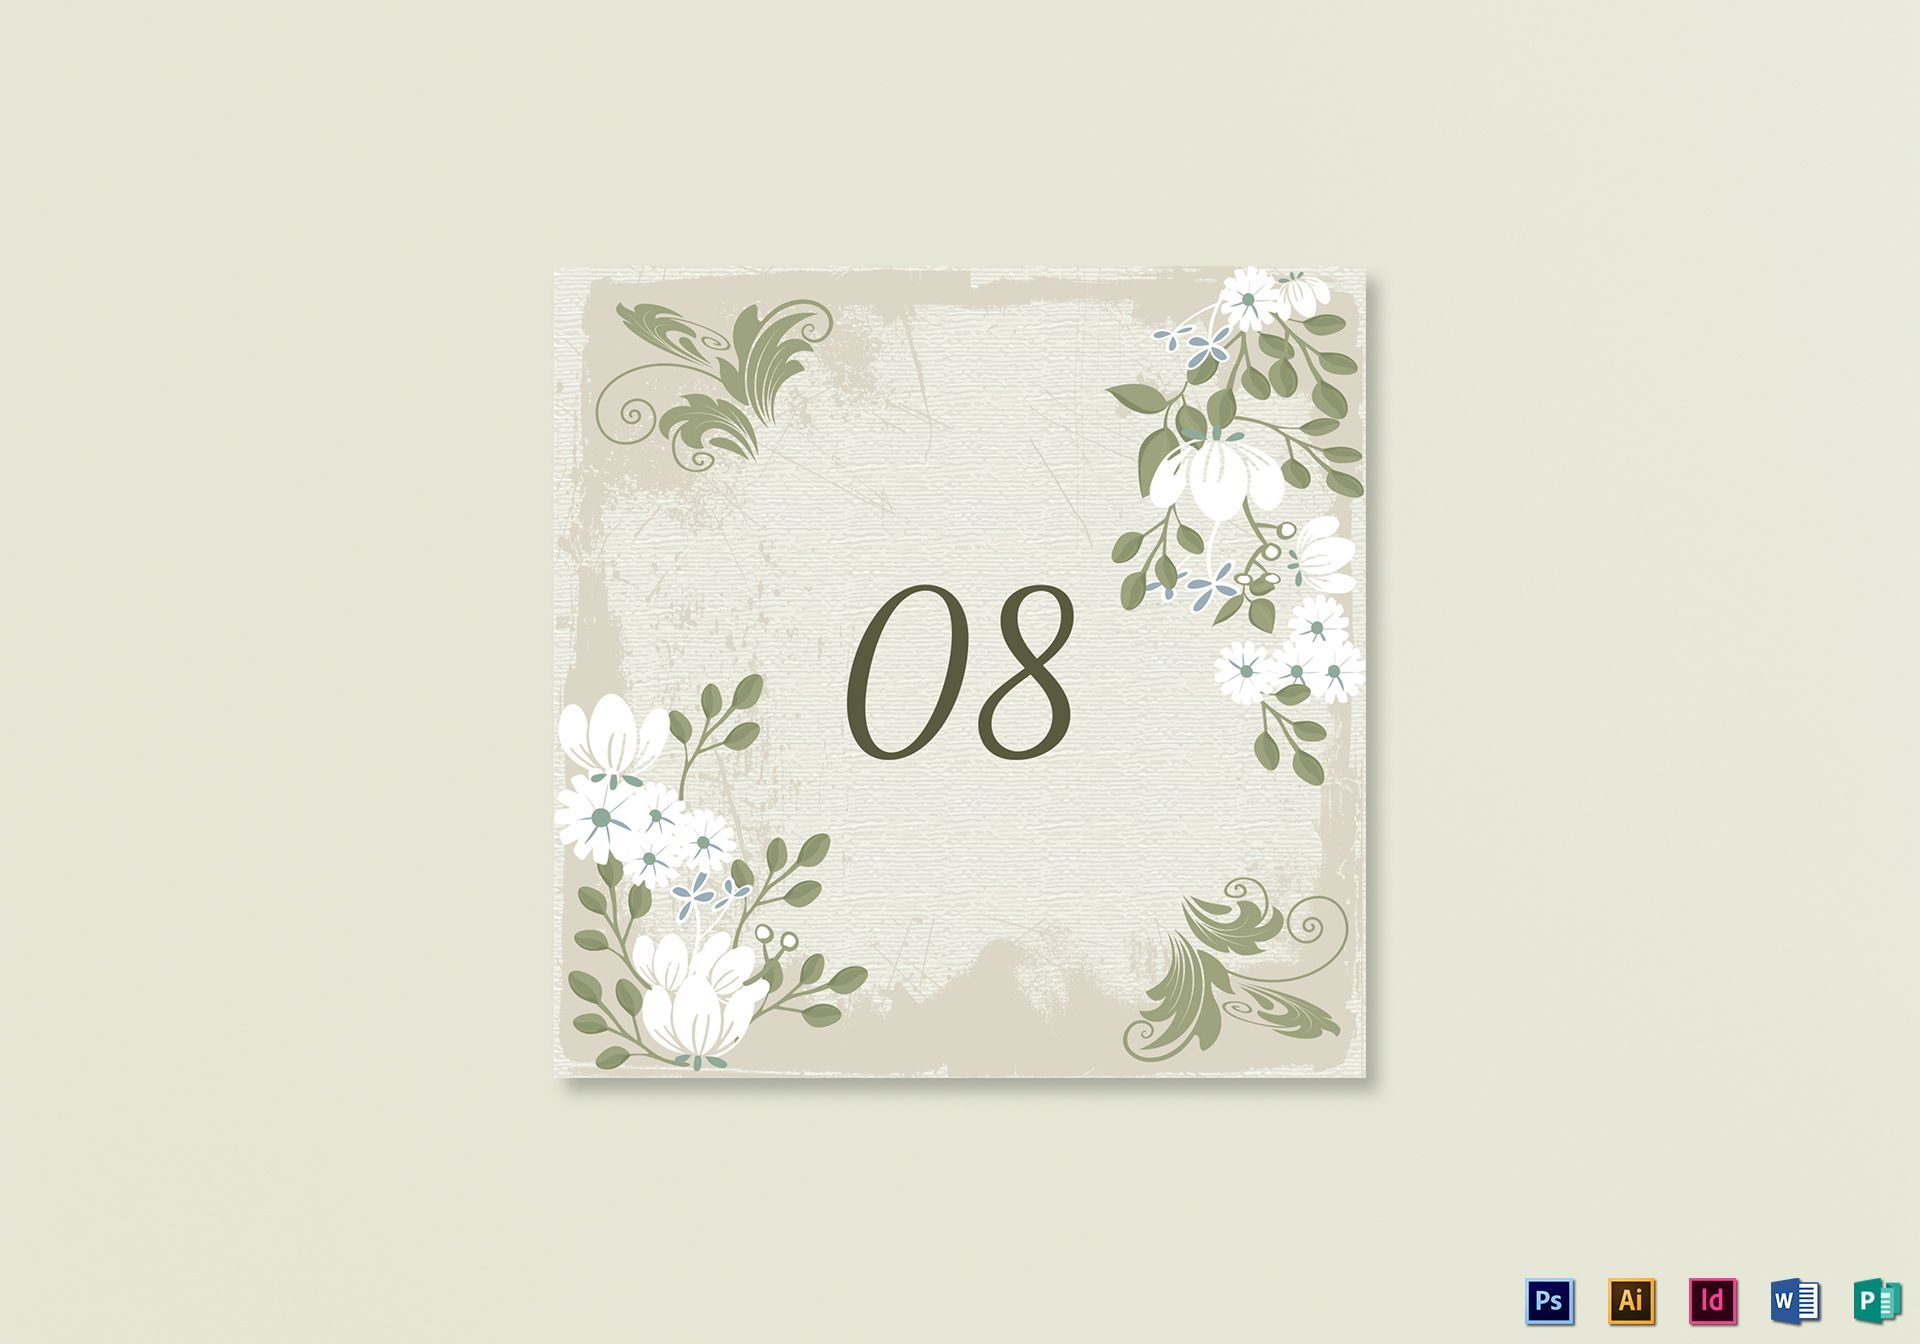 The Inspiring Vintage Table Card Template With Table Name Card Template Pics Below Is Part Of Tabl Diy Table Numbers Free Place Card Template Table Name Cards